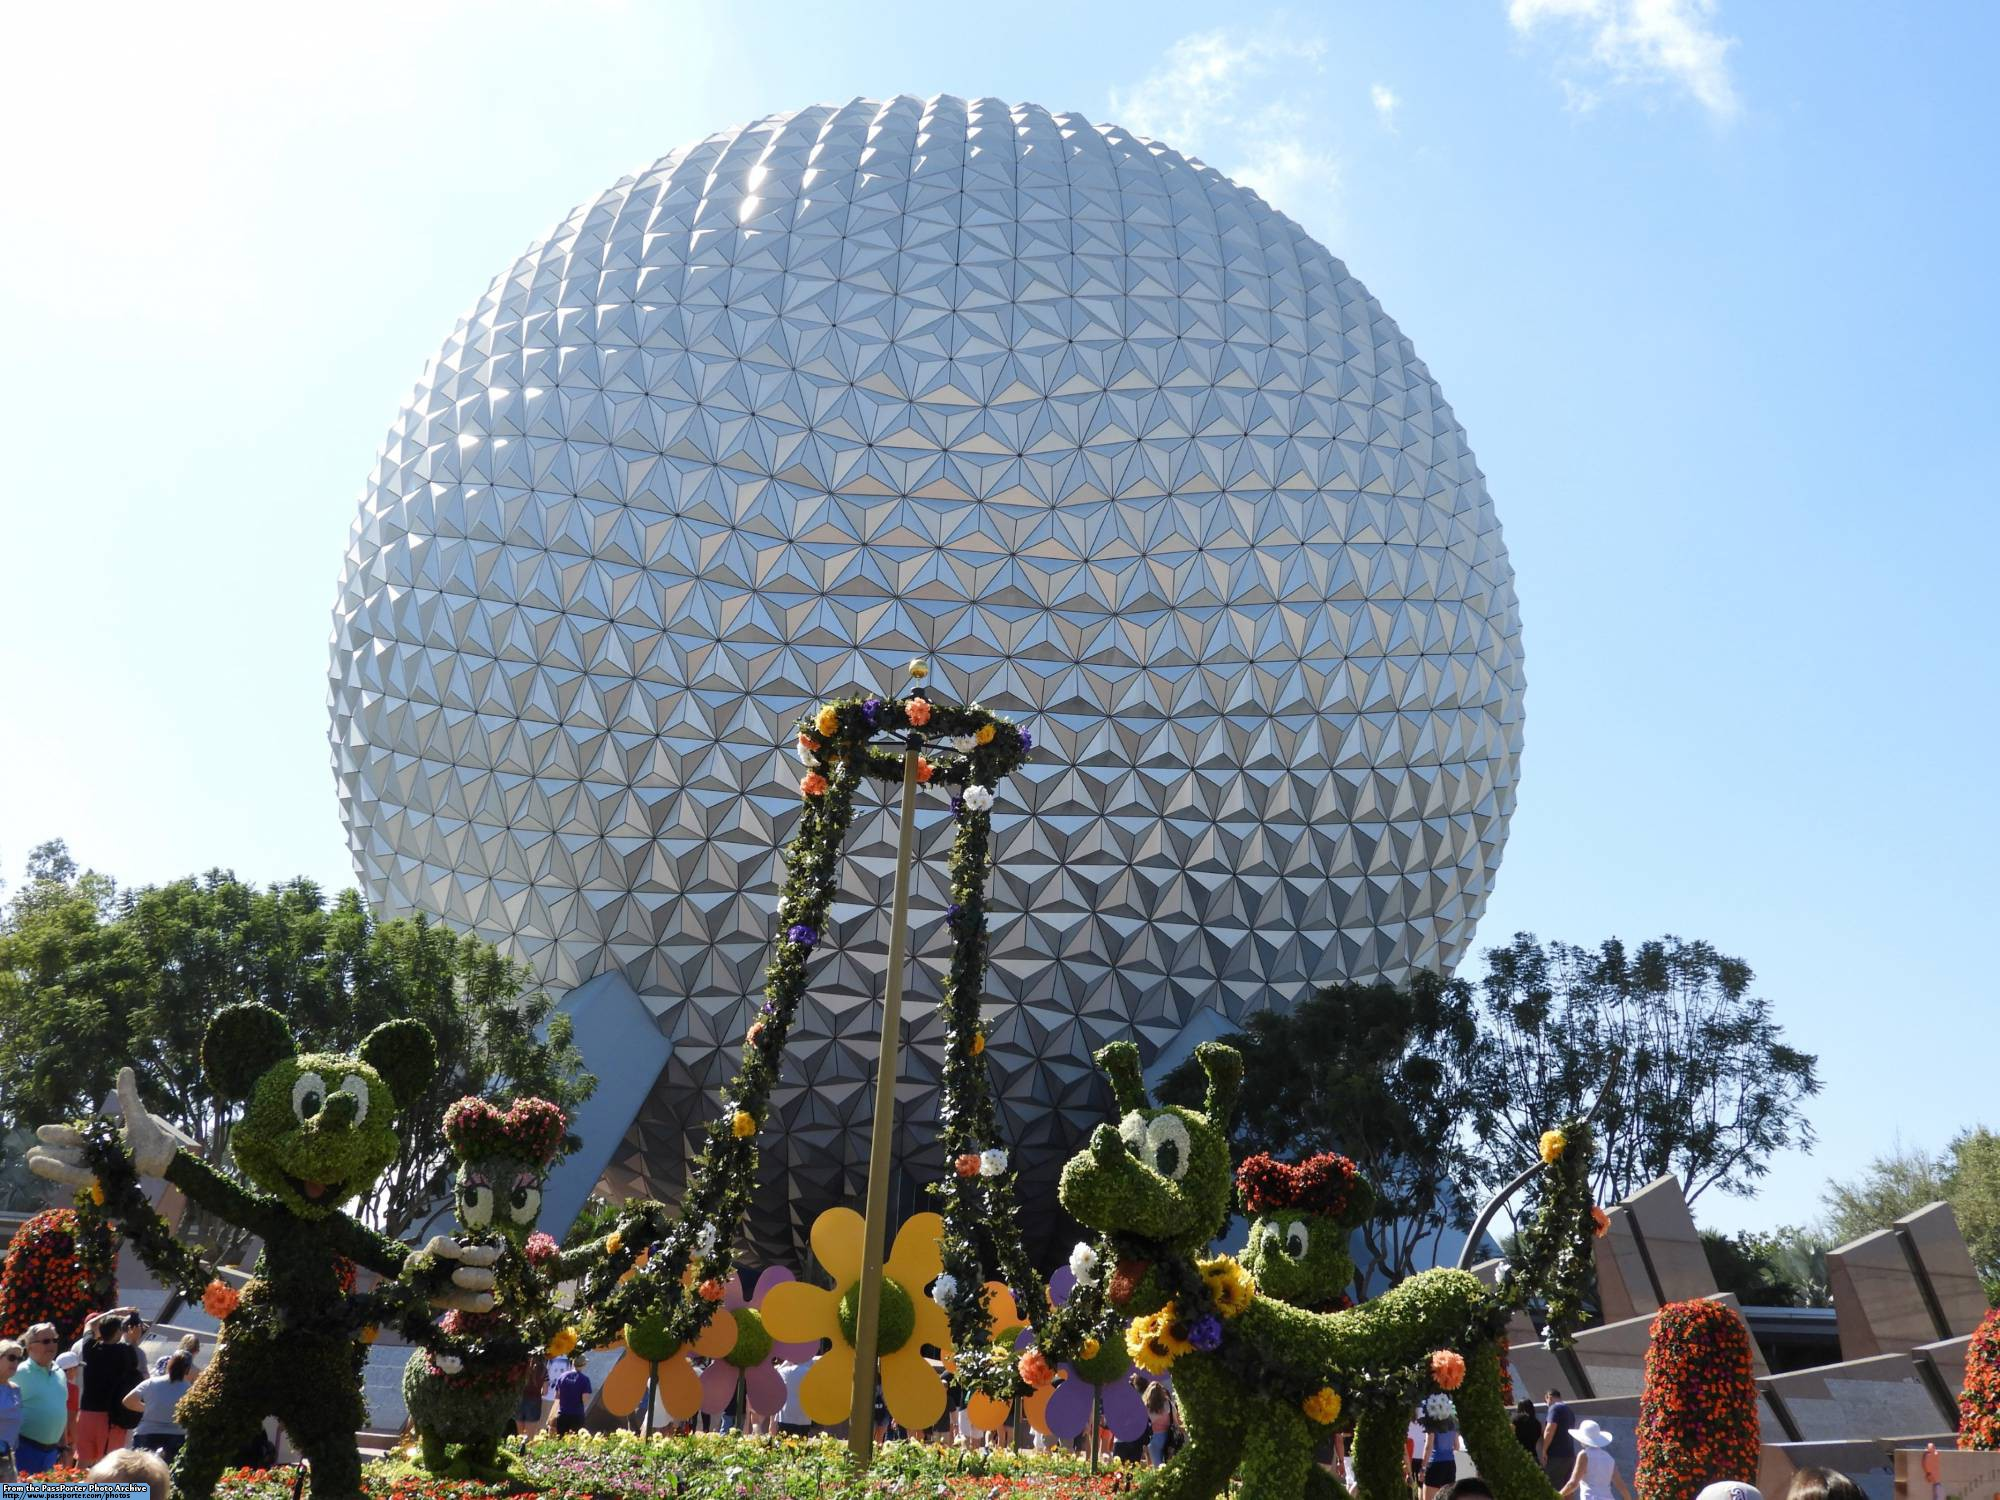 Enjoy exploring the 2017 Epcot Flower and Garden Festival |PassPorter.com